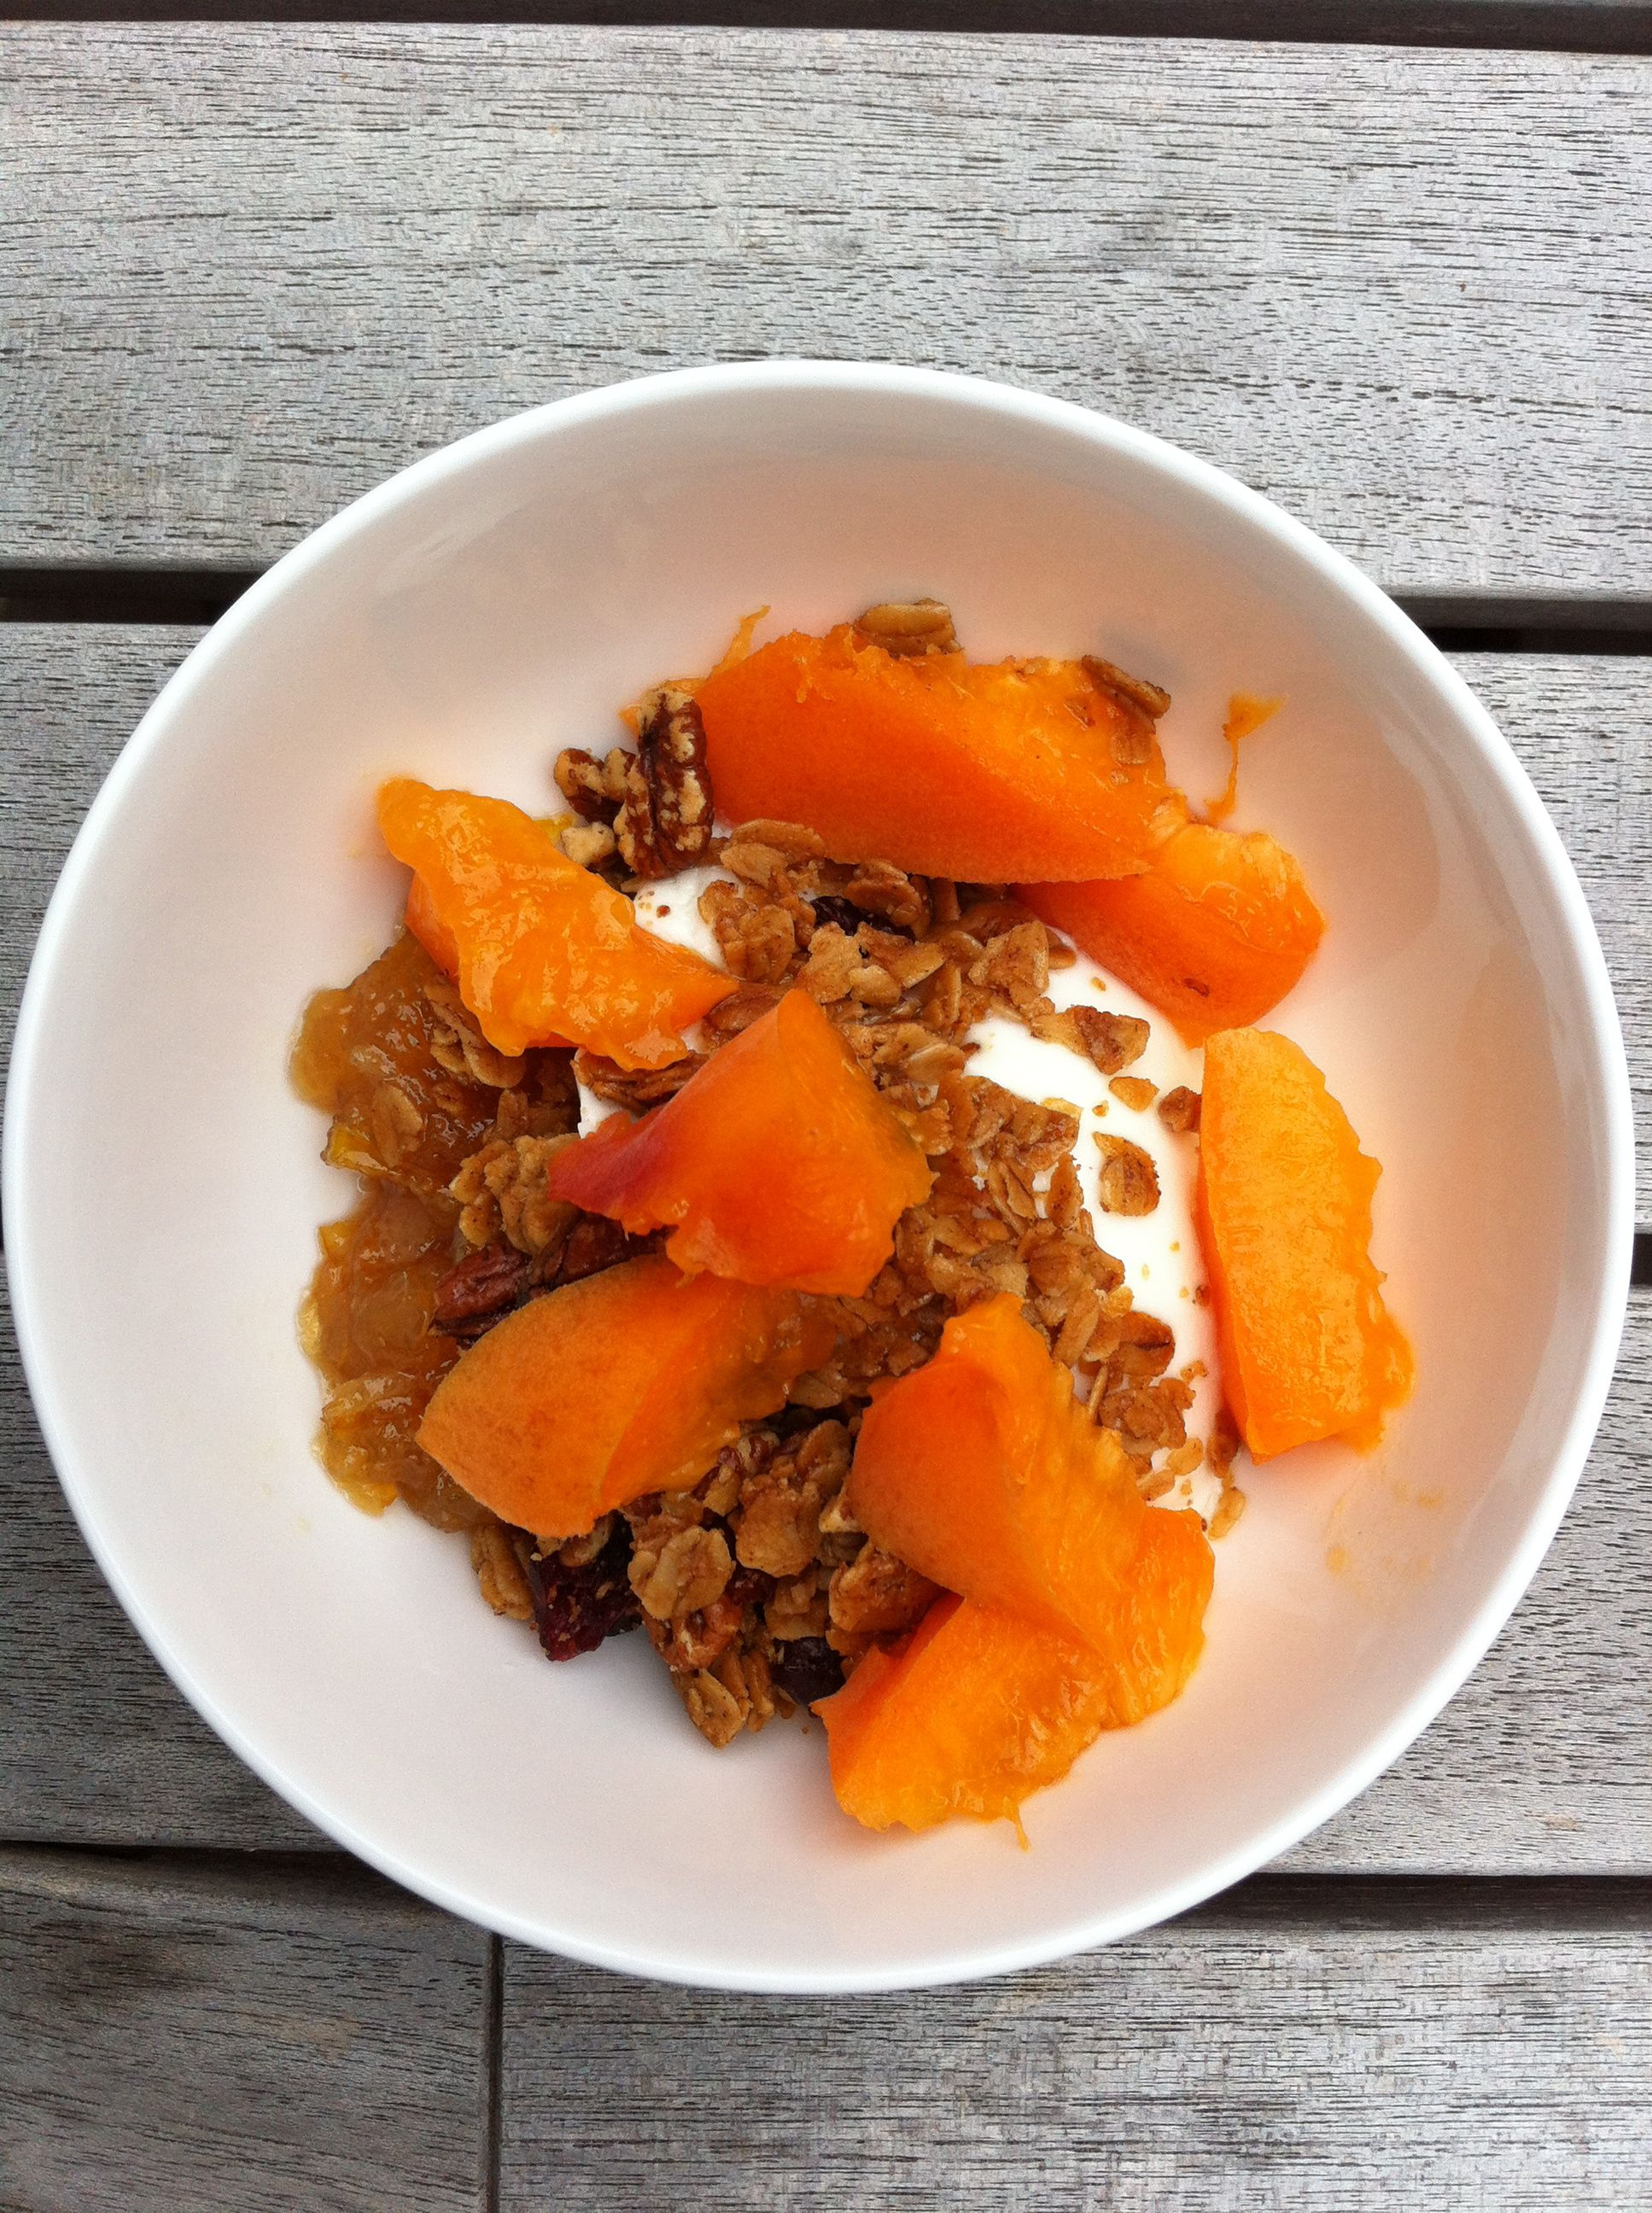 Fresh ricotta peaches and granola good mood food diet healthy fresh ricotta peaches and granola good mood food diet healthy calories app bonapp bon app forumfinder Image collections